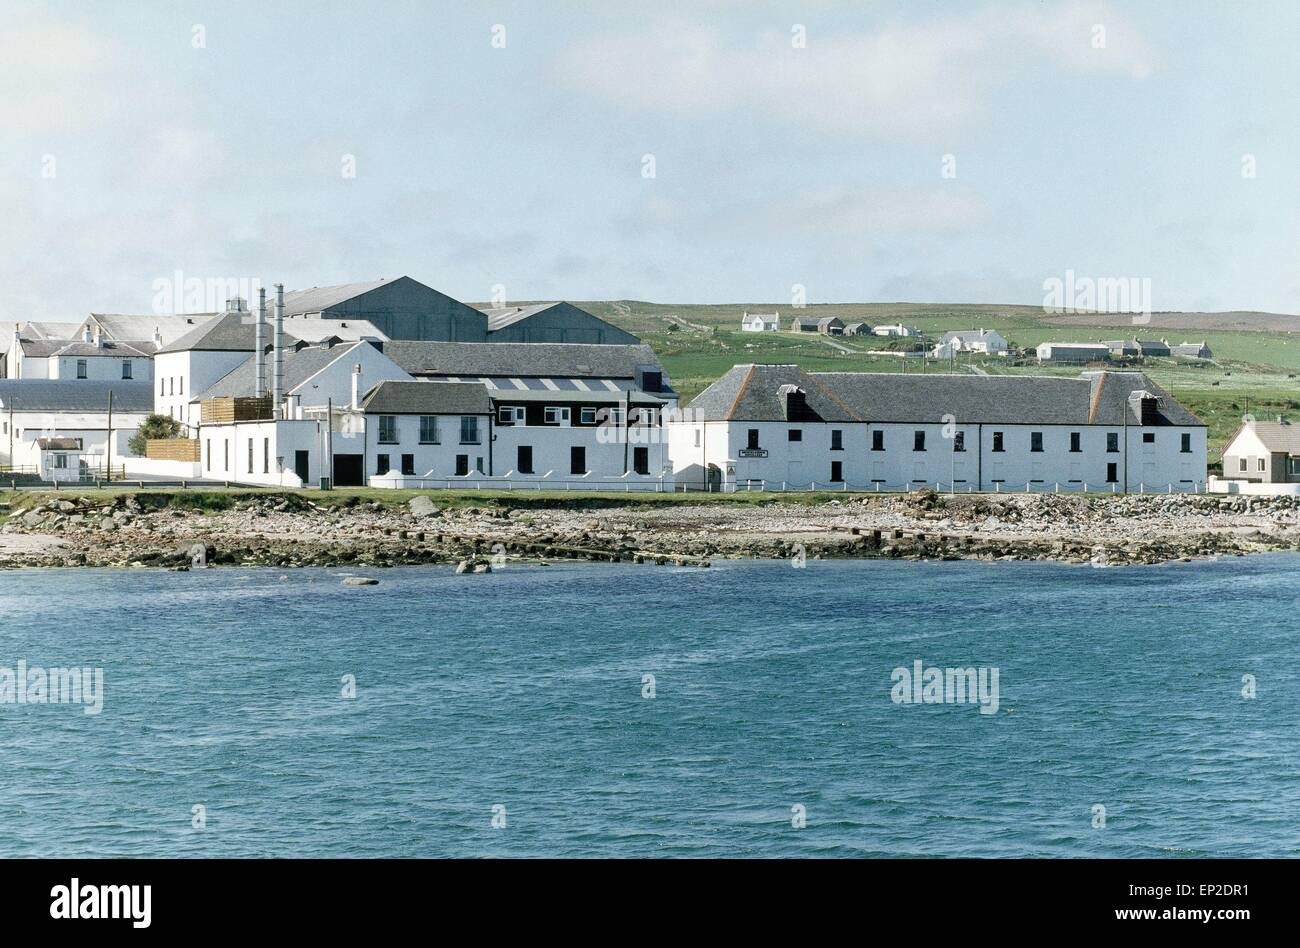 Bruichladdich Distillery on Islay, which is no longer used. - Stock Image